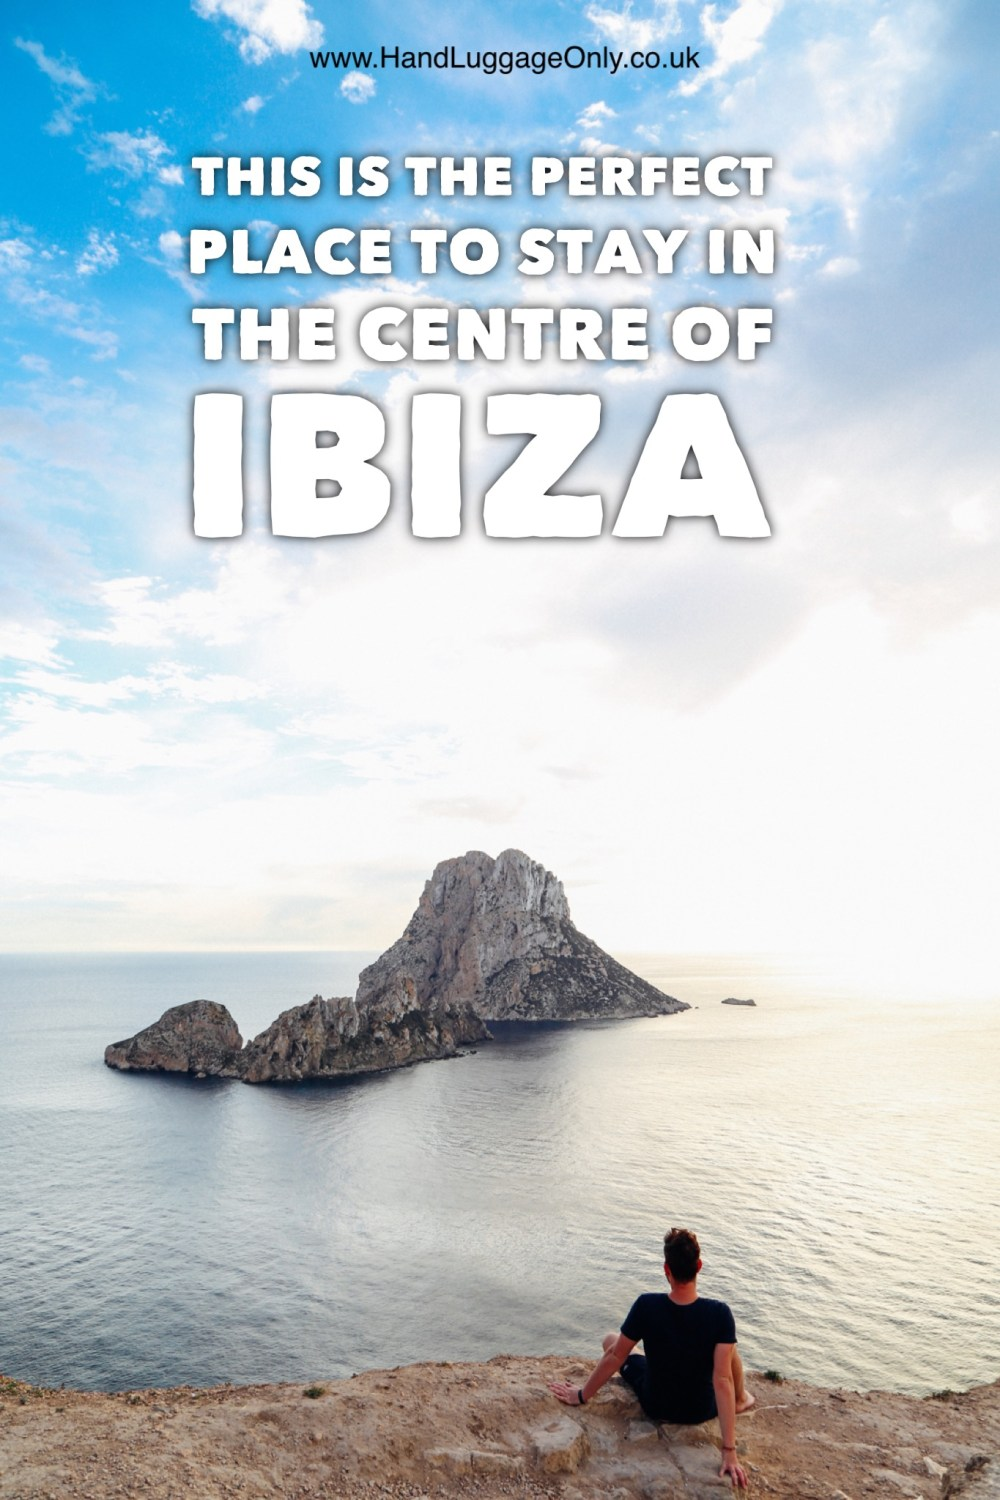 THIS IS THE PERFECT PLACE TO SAY TO ENJOY ALL THE ACTION IN IBIZA